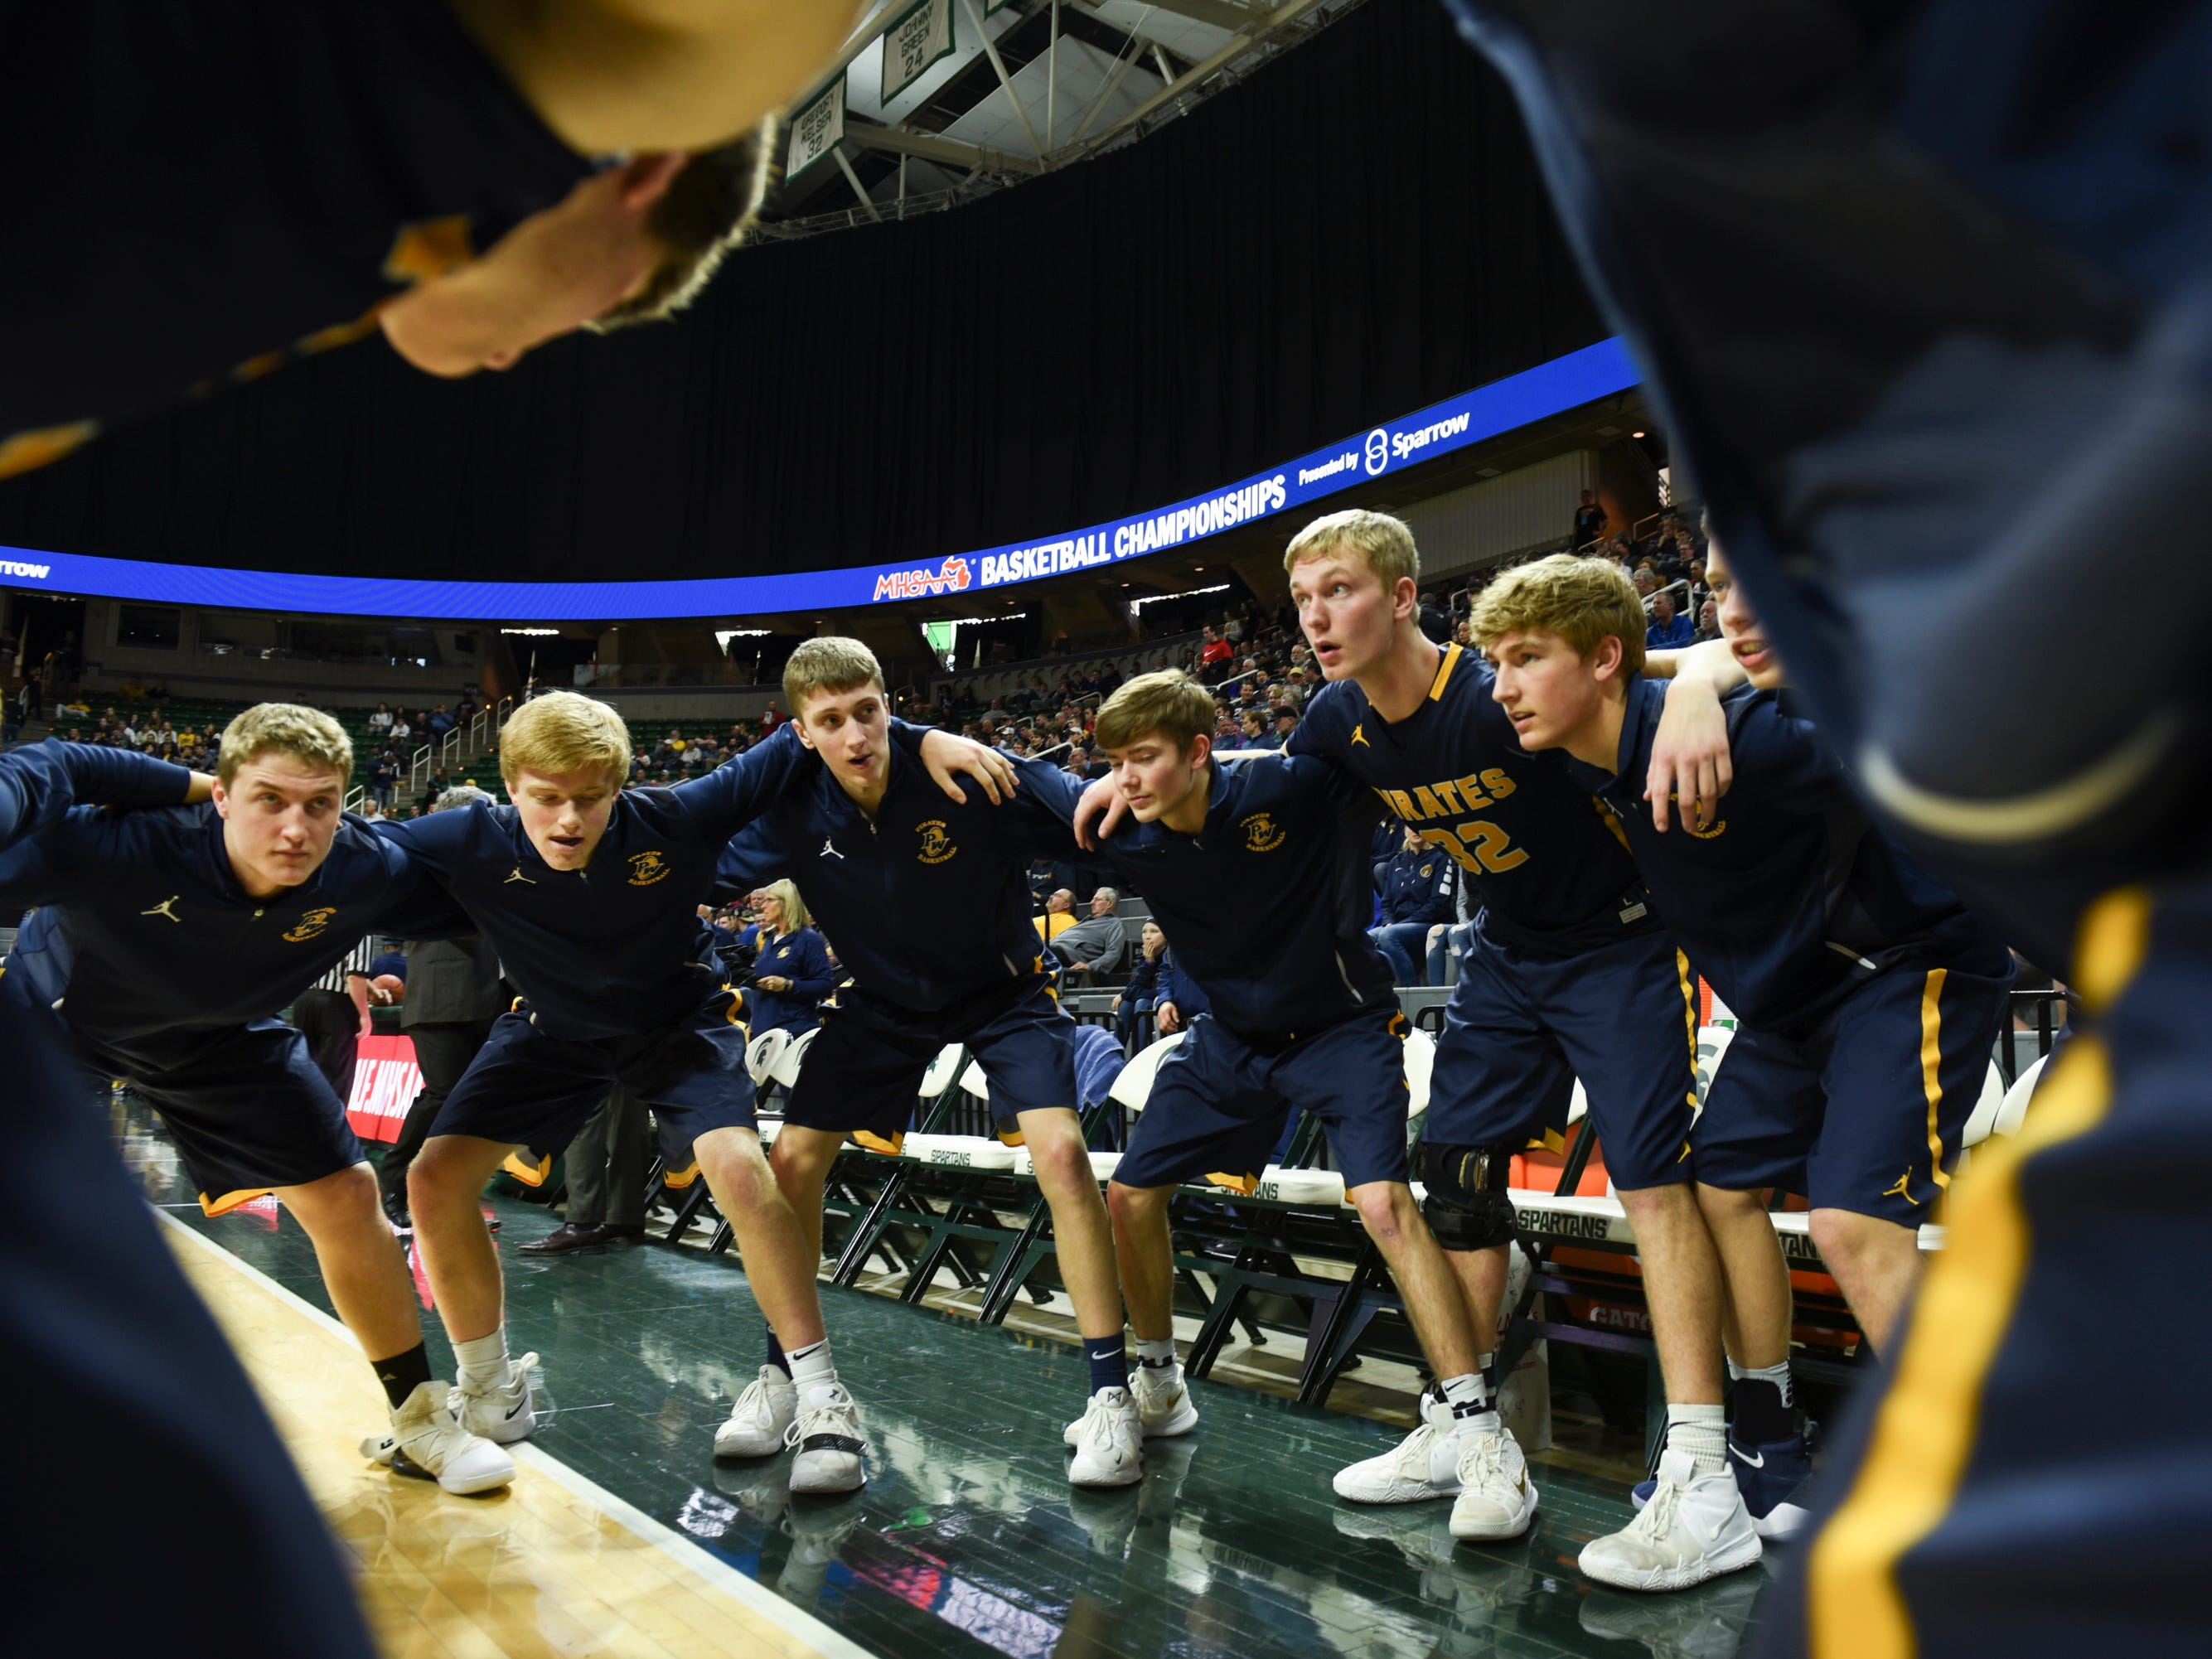 Members of the Pewsamo-Westphalia basketball team huddle up before facing Erie-Mason, Thursday, March 14, 2019, at the MHSAA Div. 3 state semifinal at the Breslin Center in East Lansing.   P-W earned a berth in the state final winning 60-45.